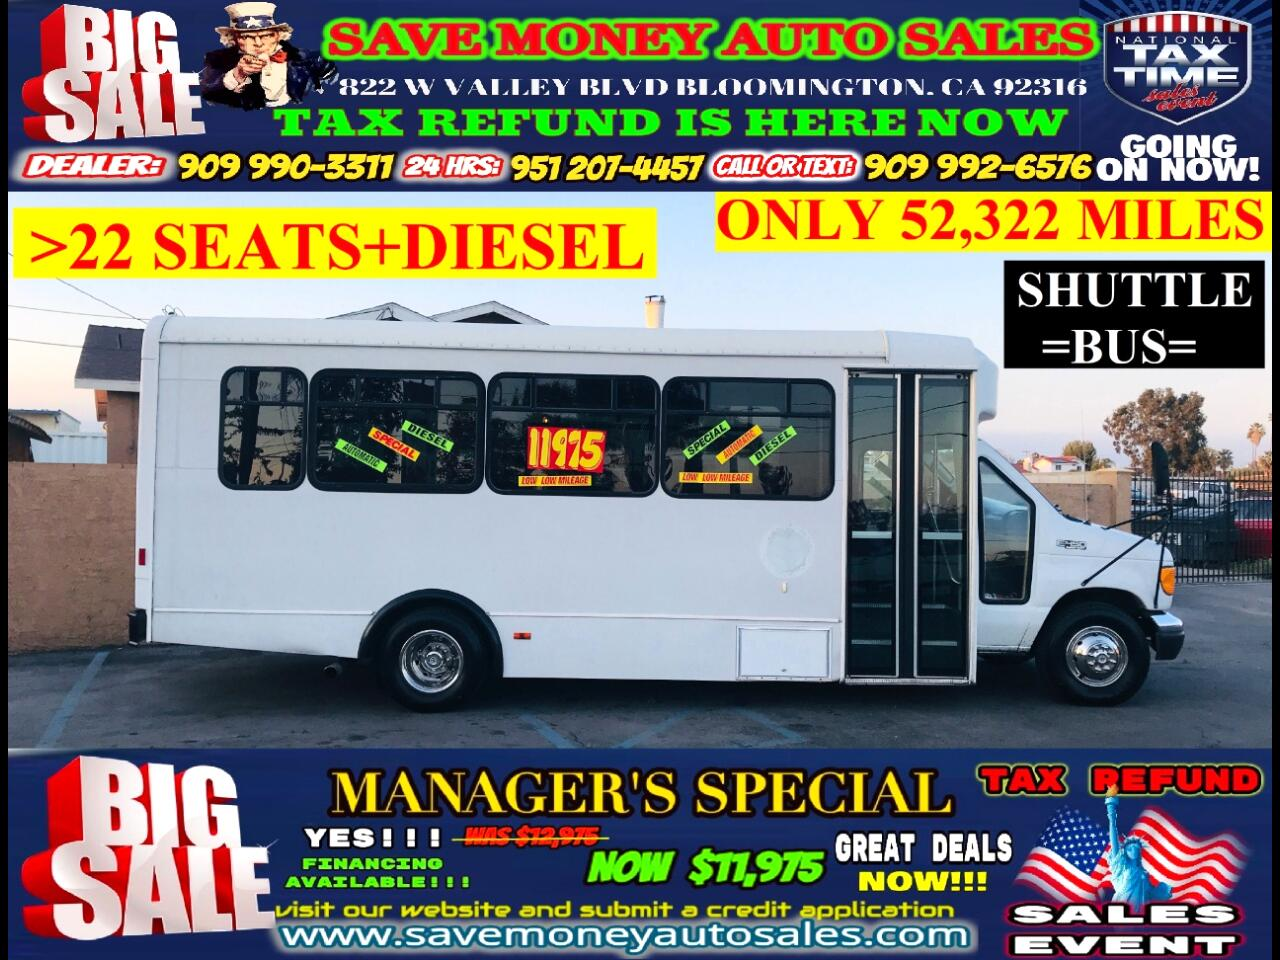 2004 Ford E-450 Super Duty SHUTTLE BUS>22 SEATS>52,322 MILES>TURBO DIESEL>>